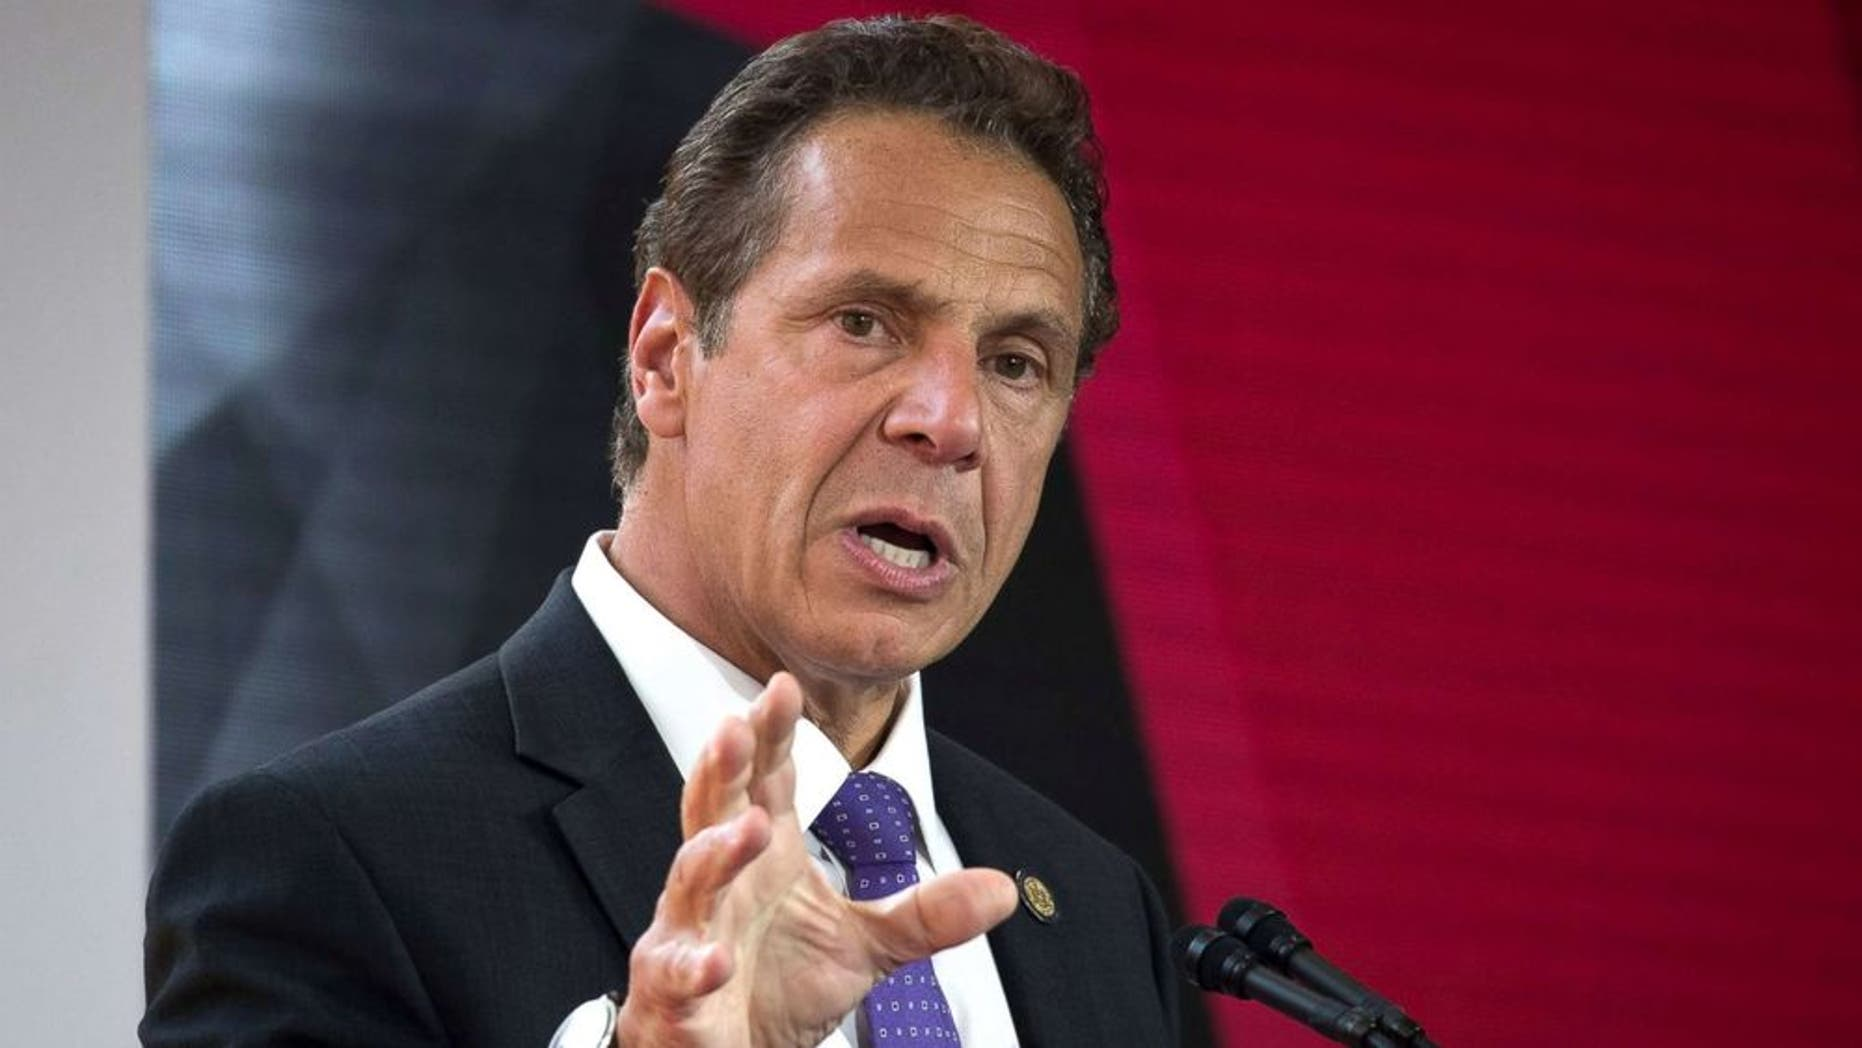 New York Gov. Andrew Cuomo has come under fire from state Democrats over a $25,000-a-plate fundraiser. (Fox News)